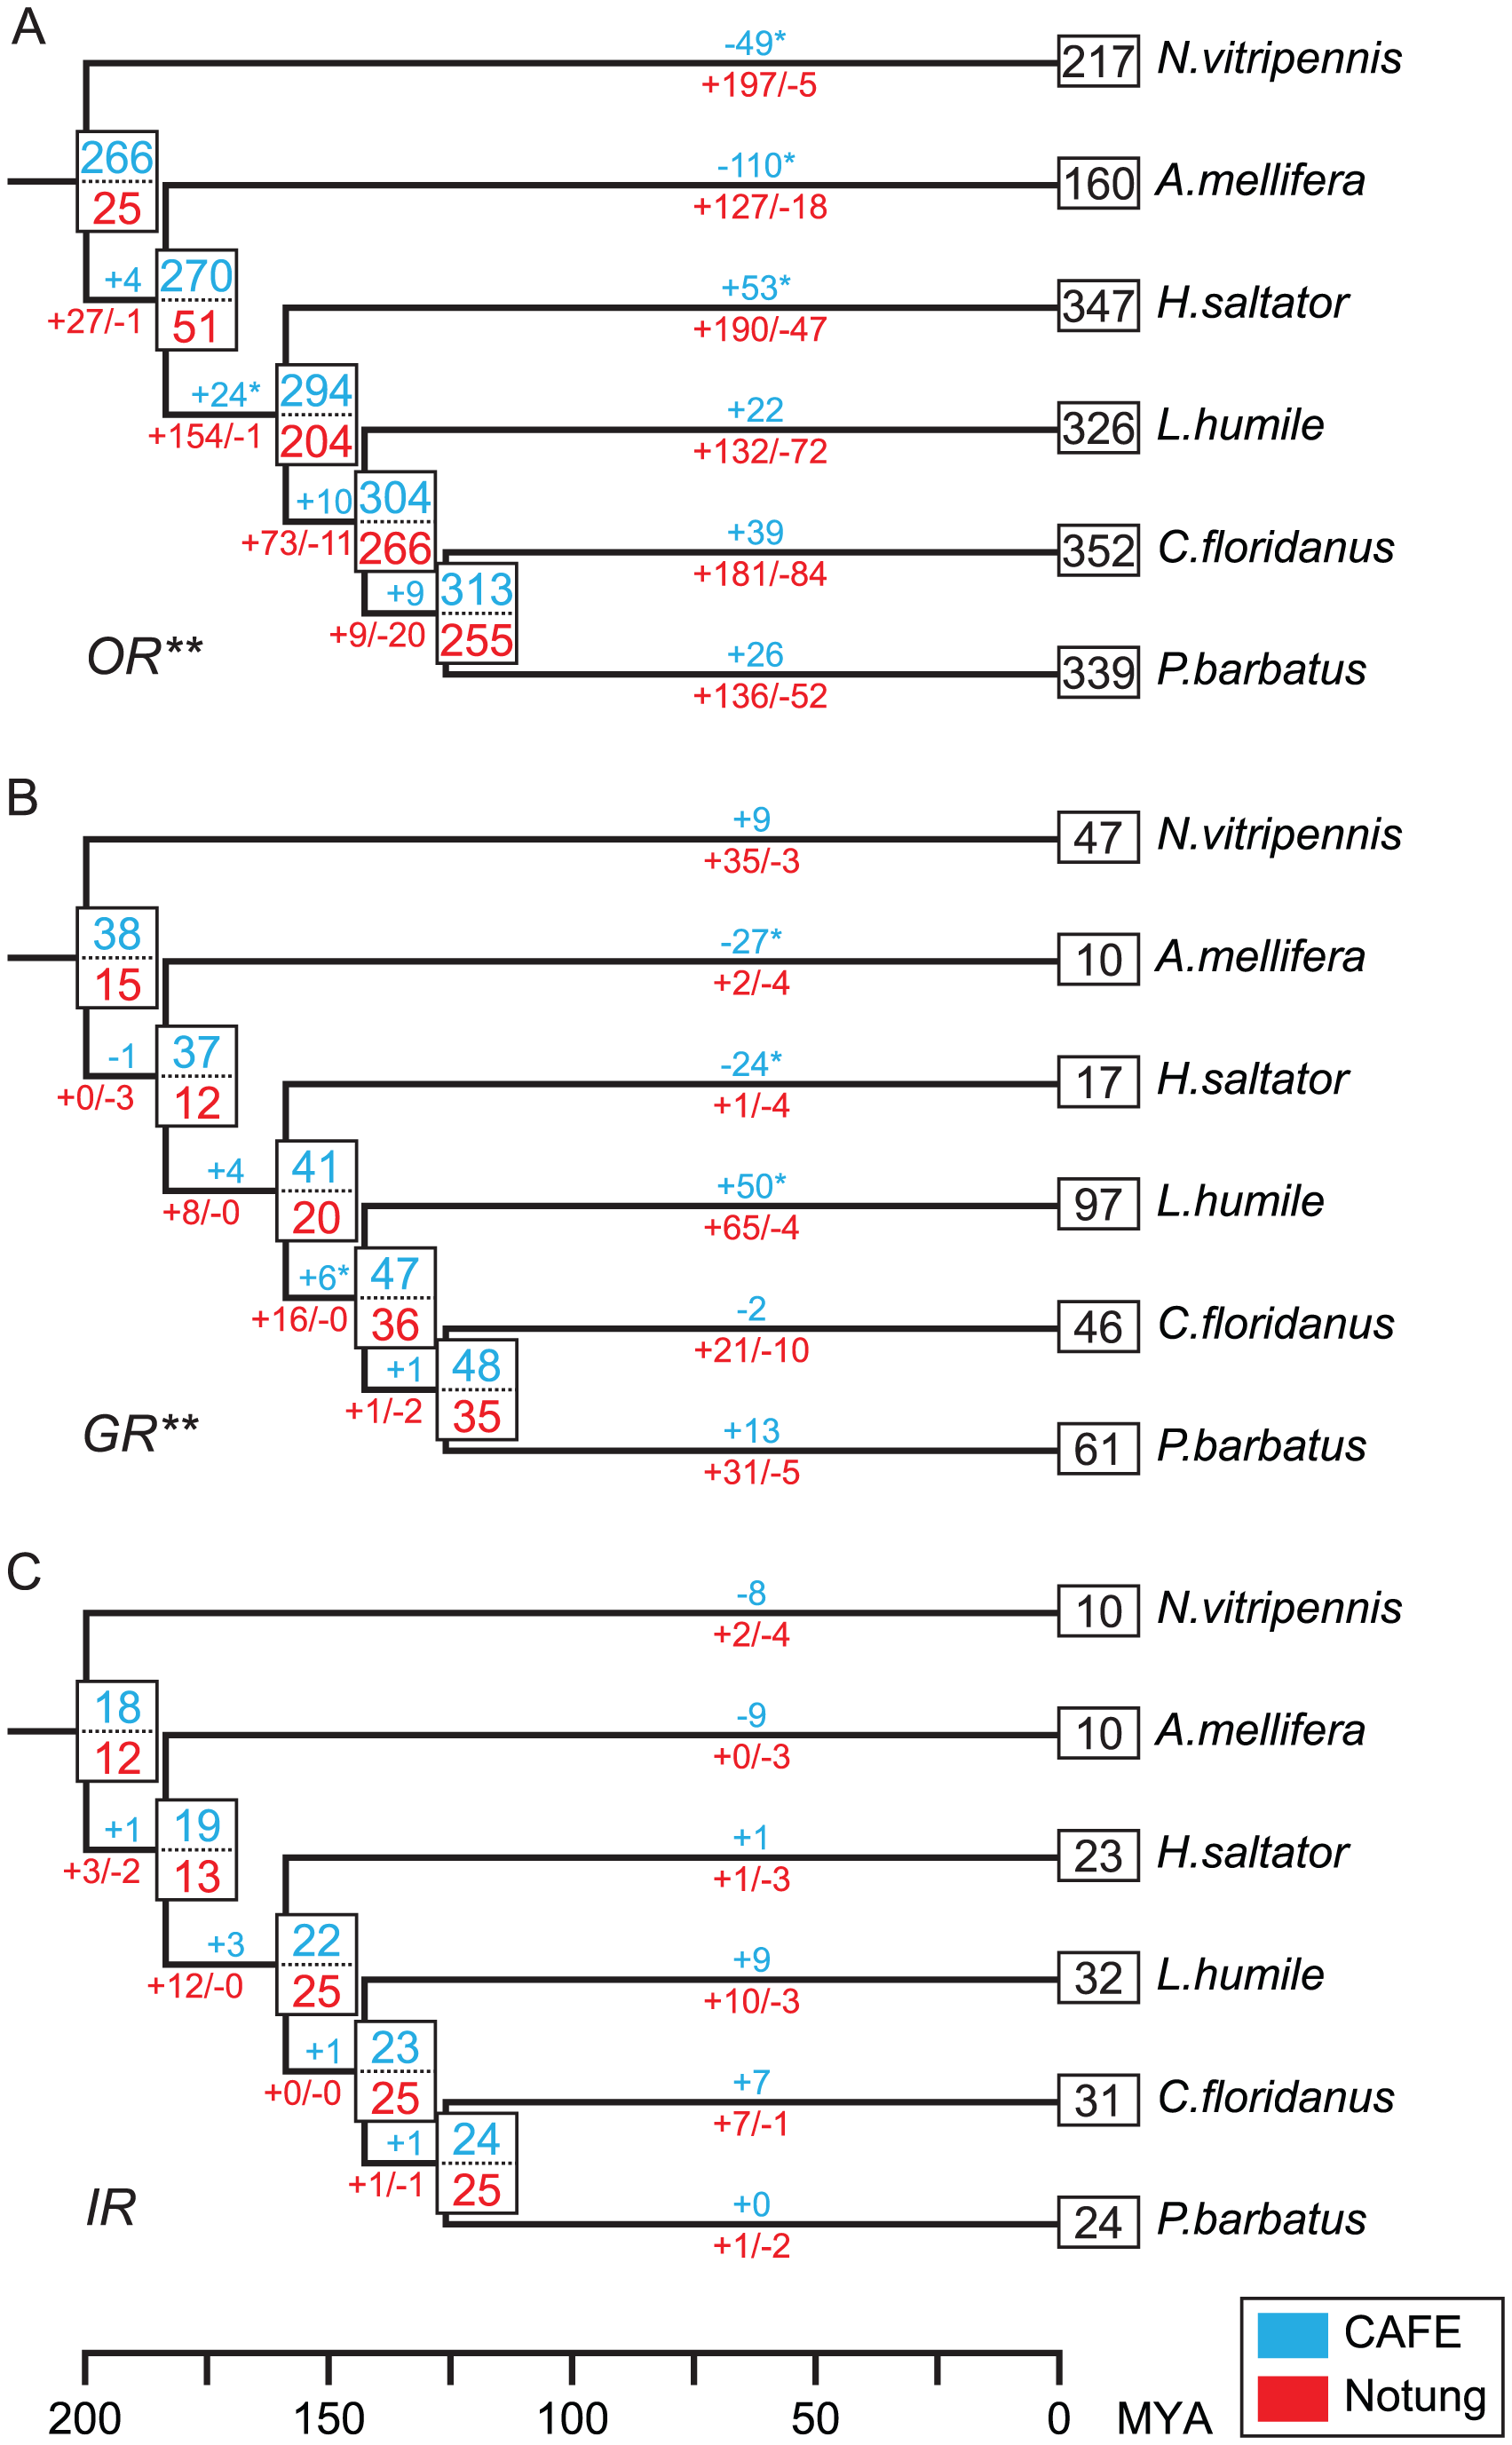 Estimated numbers of gene birth-and-death events and ancestral gene copies for chemosensory gene families.